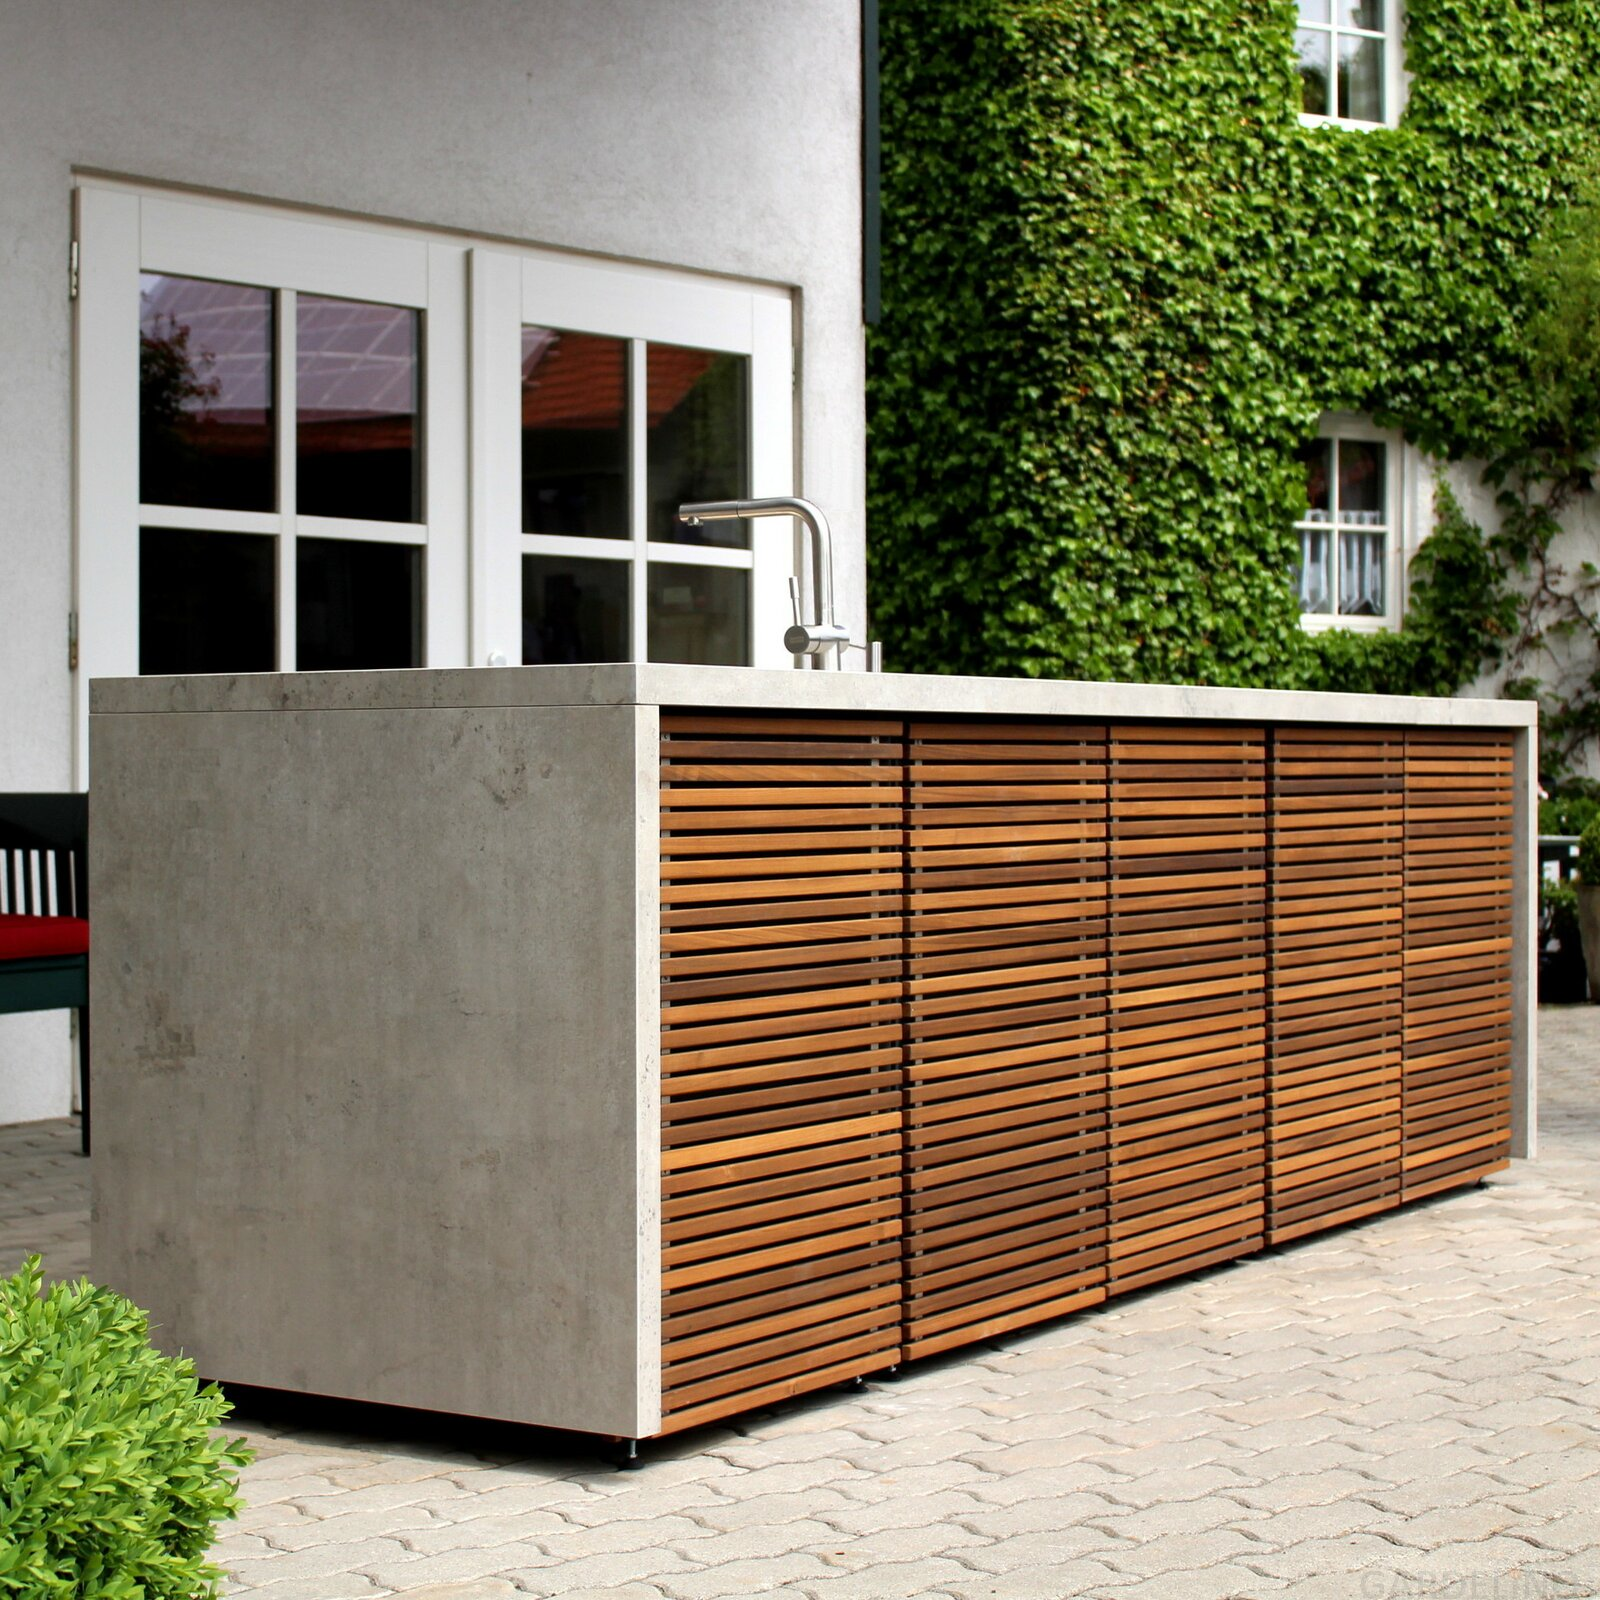 Materialien Outdoor Küche Herrenhaus Cubic Outdoor Kitchen Fachhandel